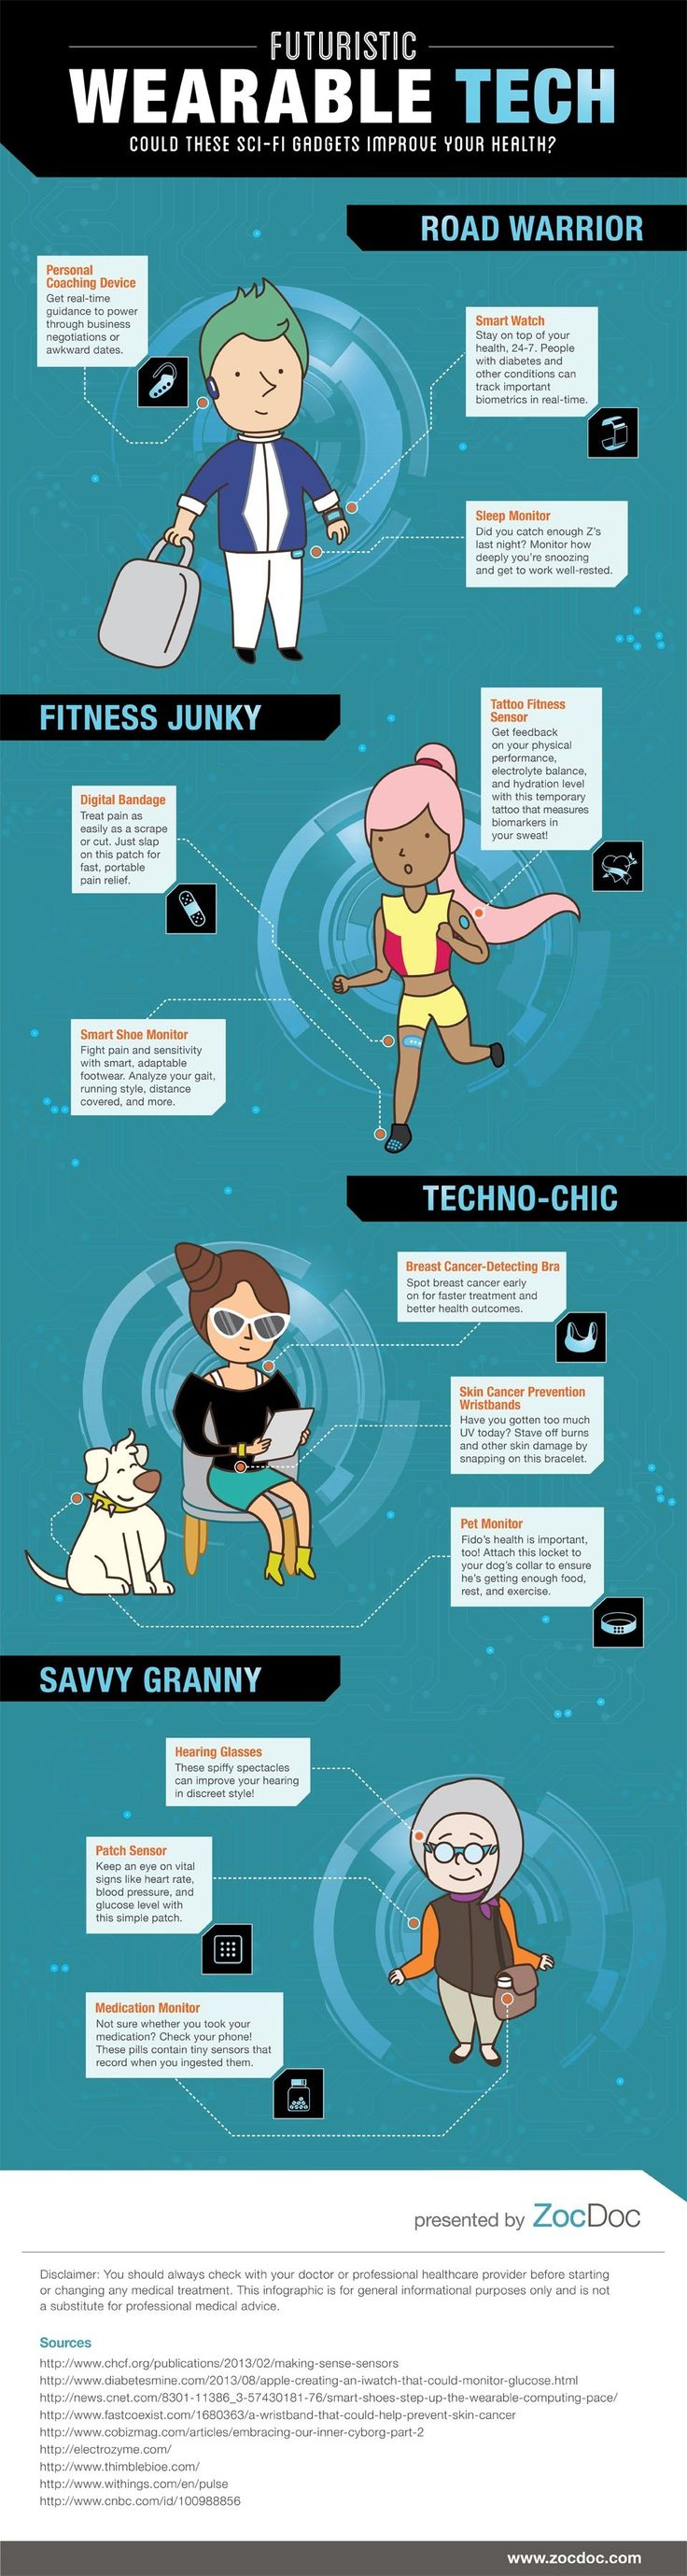 Wearables and the Future of Healthcare Infographic http://www.hitconsultant.net/2014/01/24/wearable-technology-and-the-future-of-healthcare-infographic/